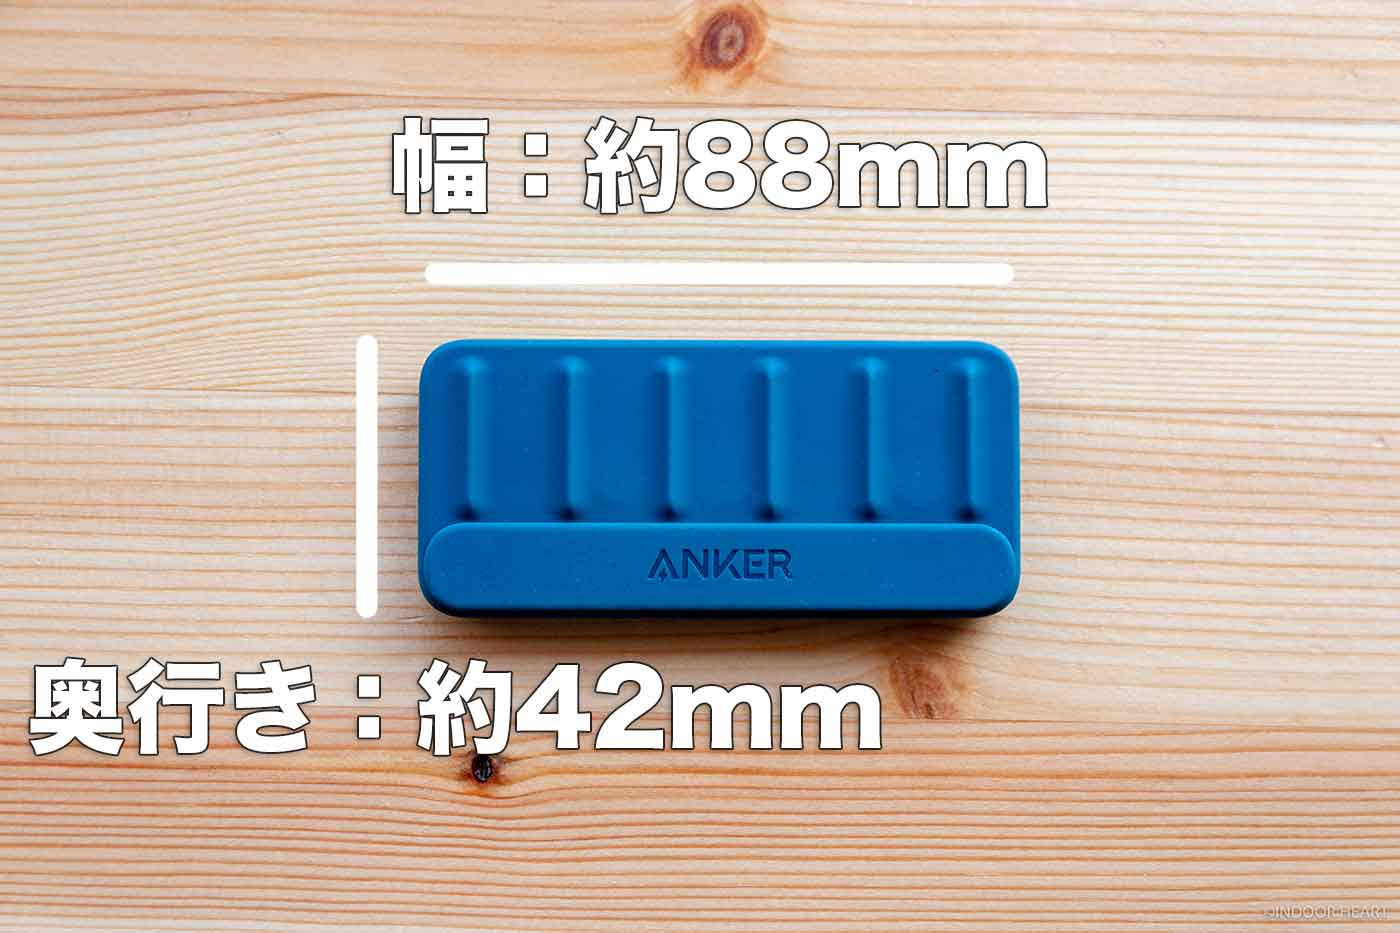 Anker Magnetic Cable Holderのサイズ